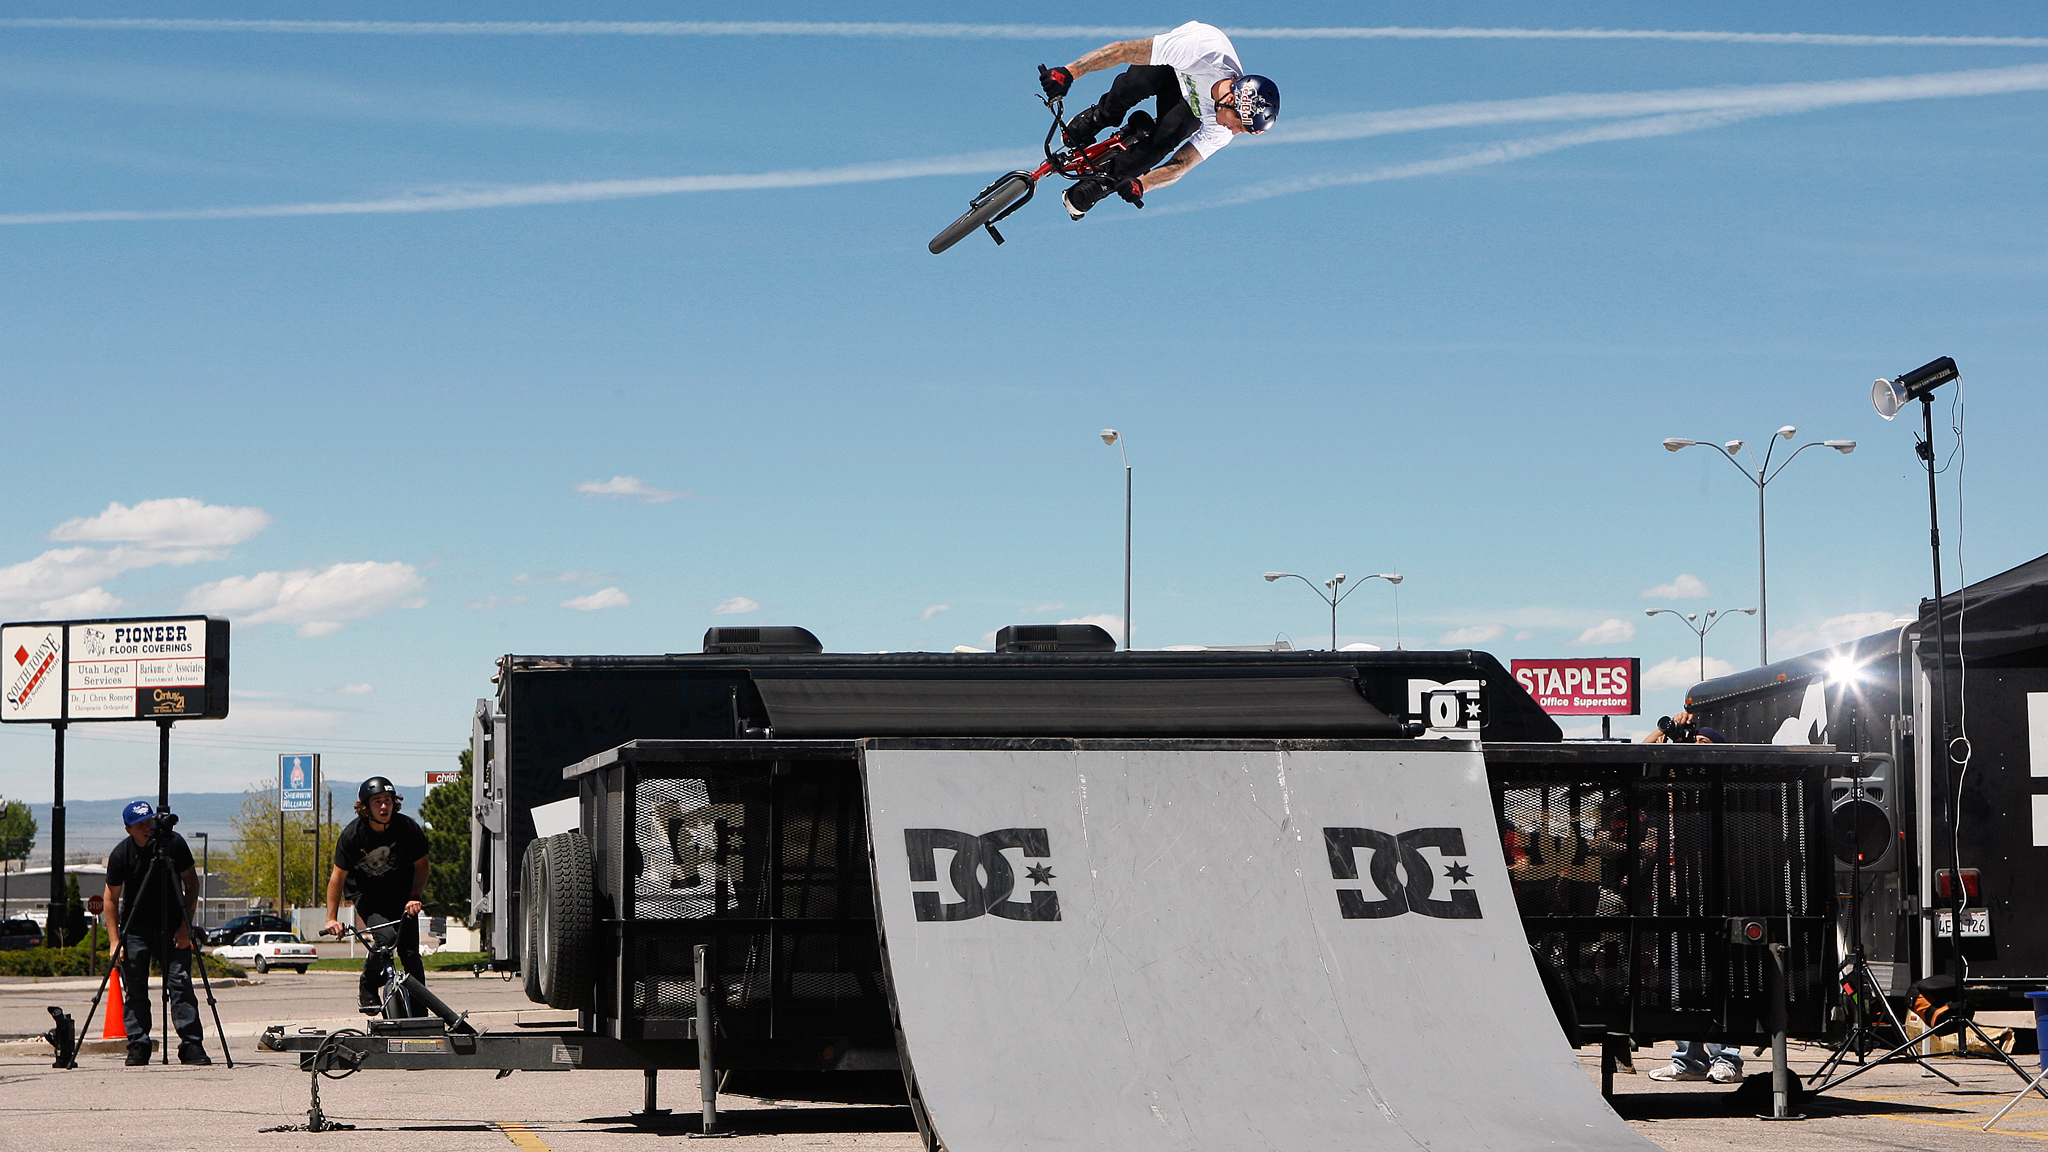 DC shoes team rider Corey Bohan on the DC Roughin' It tour in 2011.